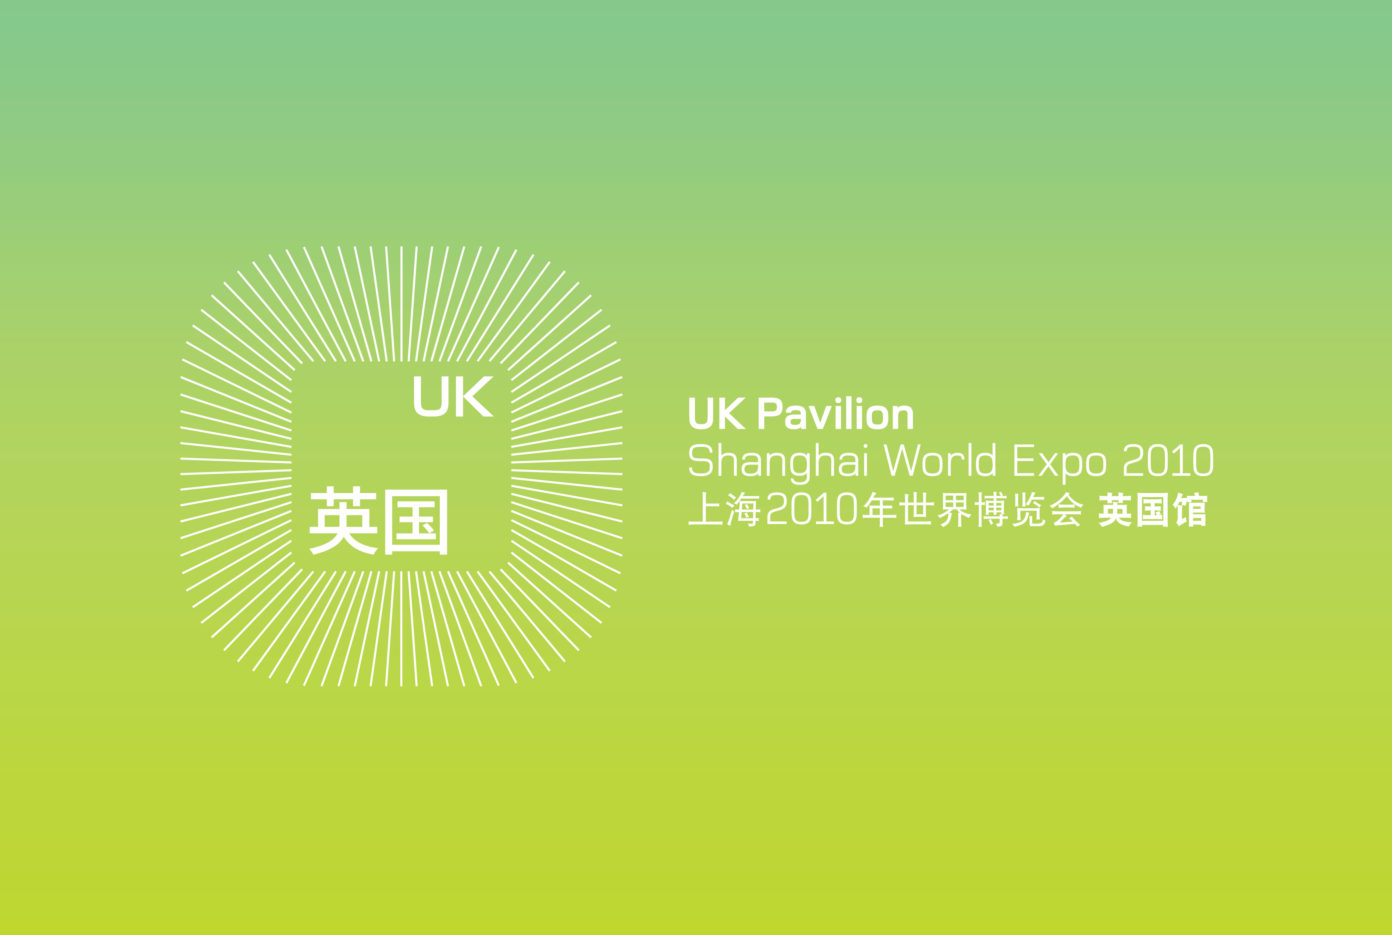 UK Pavillion Shanghai Expo 2010 Large-image 1 1400x940